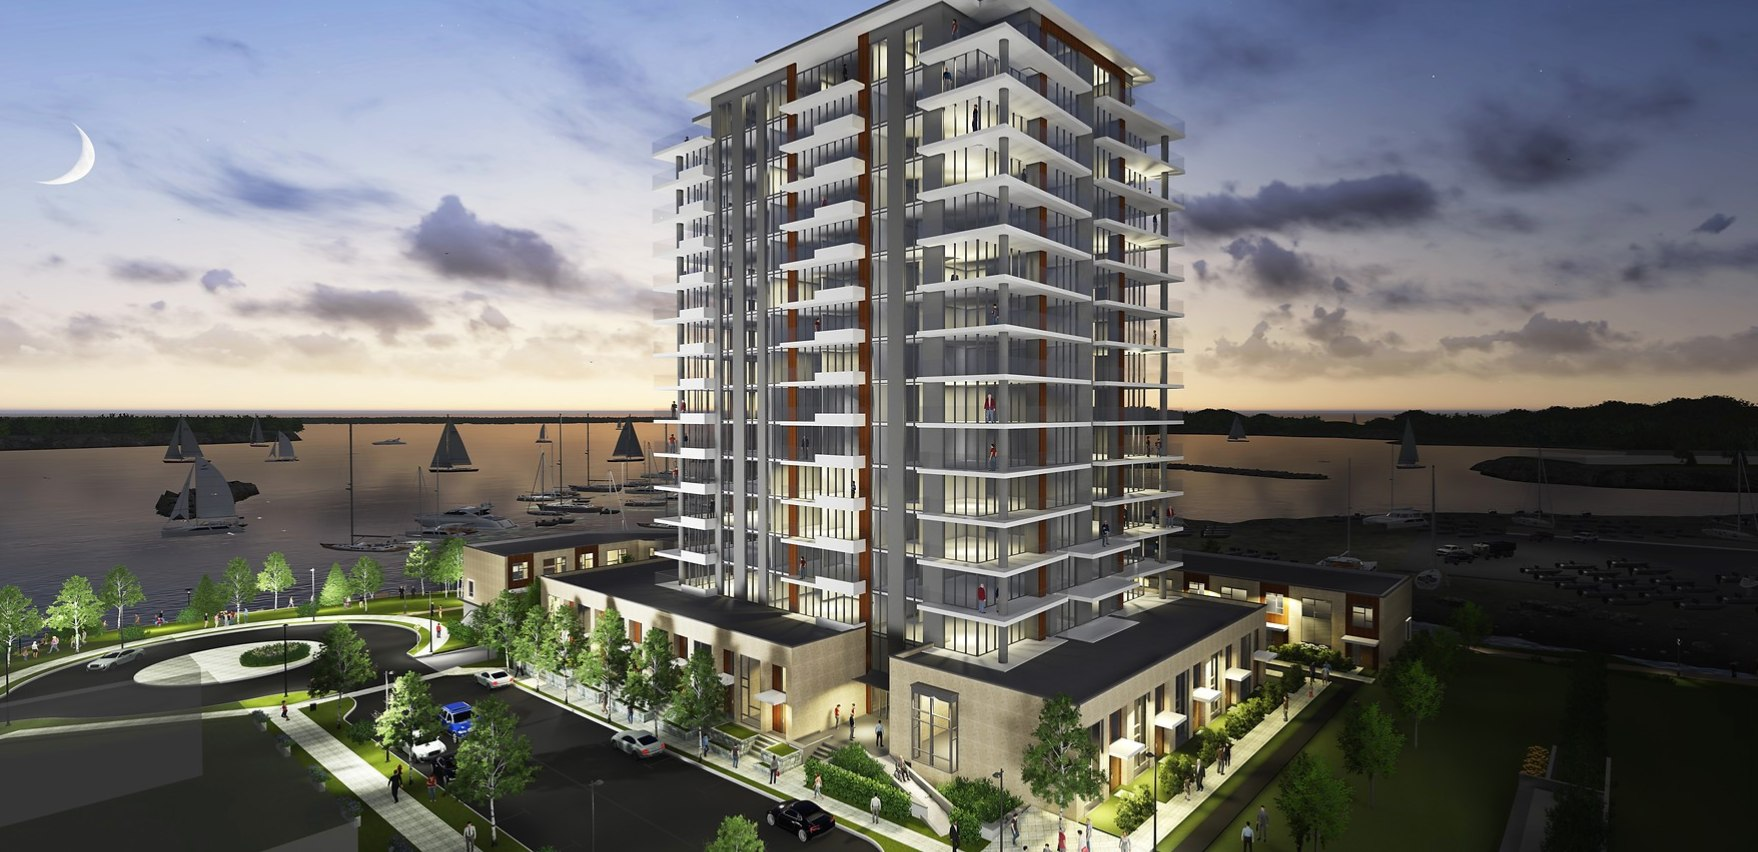 Seapoint_Exterior1